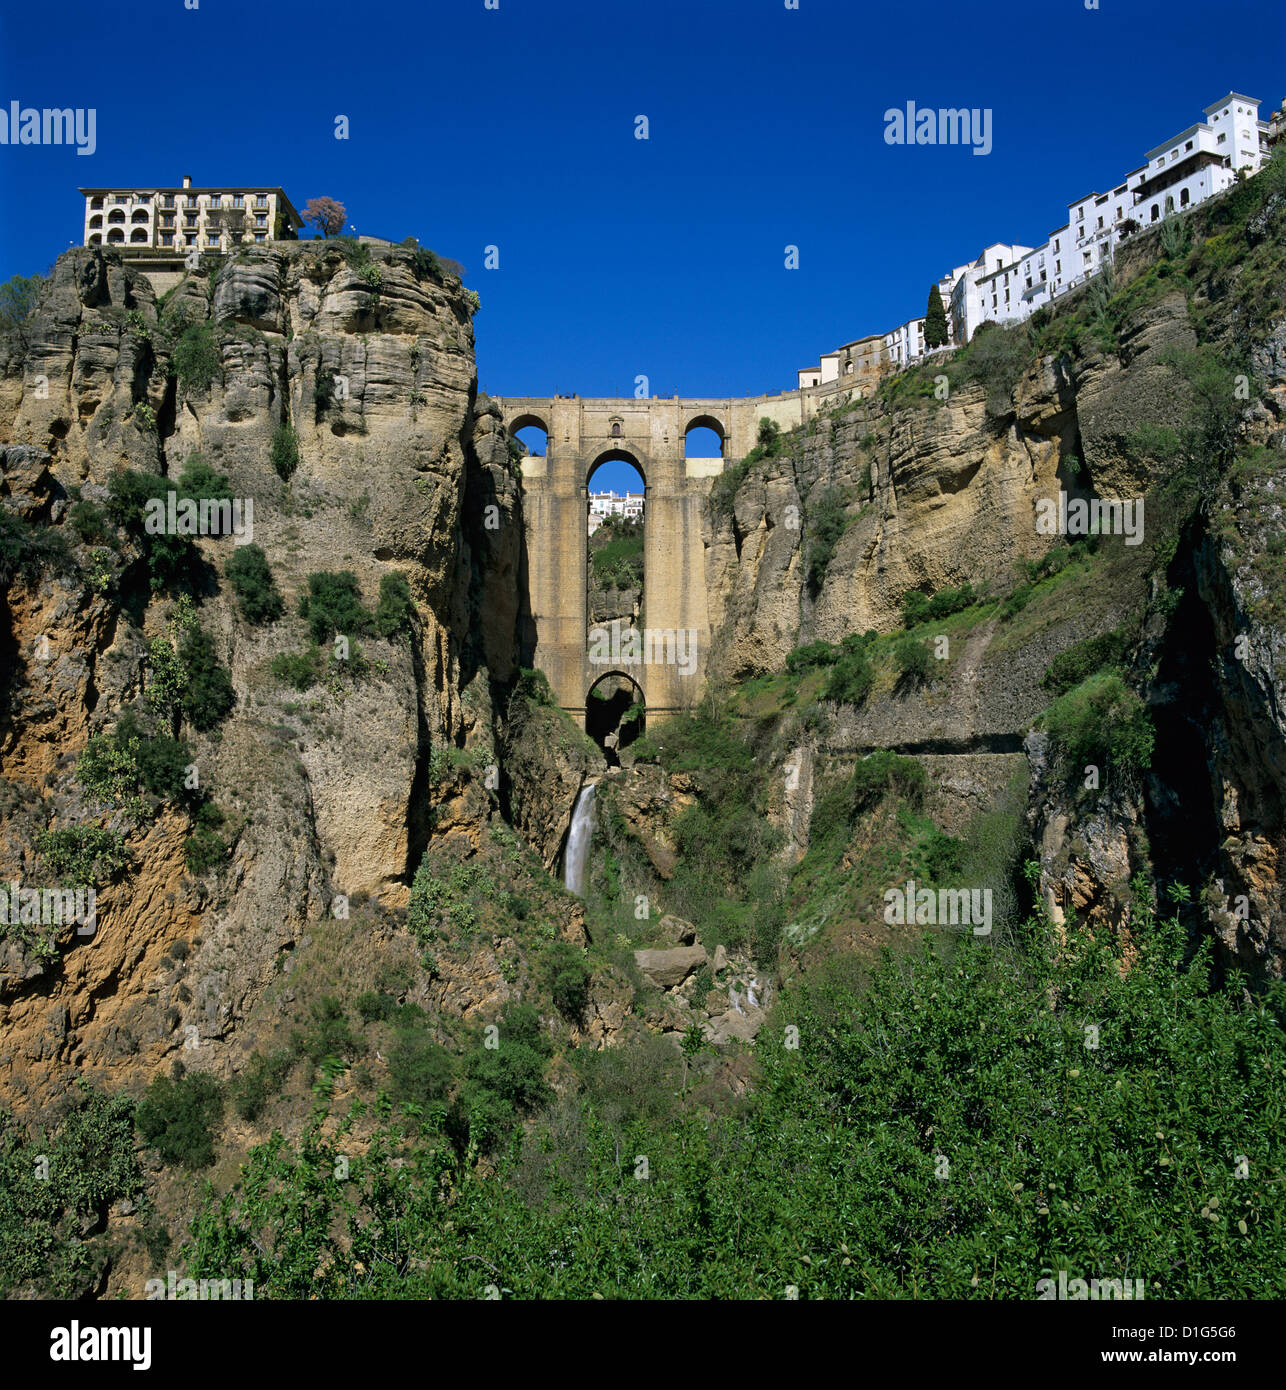 Old town and Puente Nuevo, Ronda, Andalucia, Spain, Europe - Stock Image